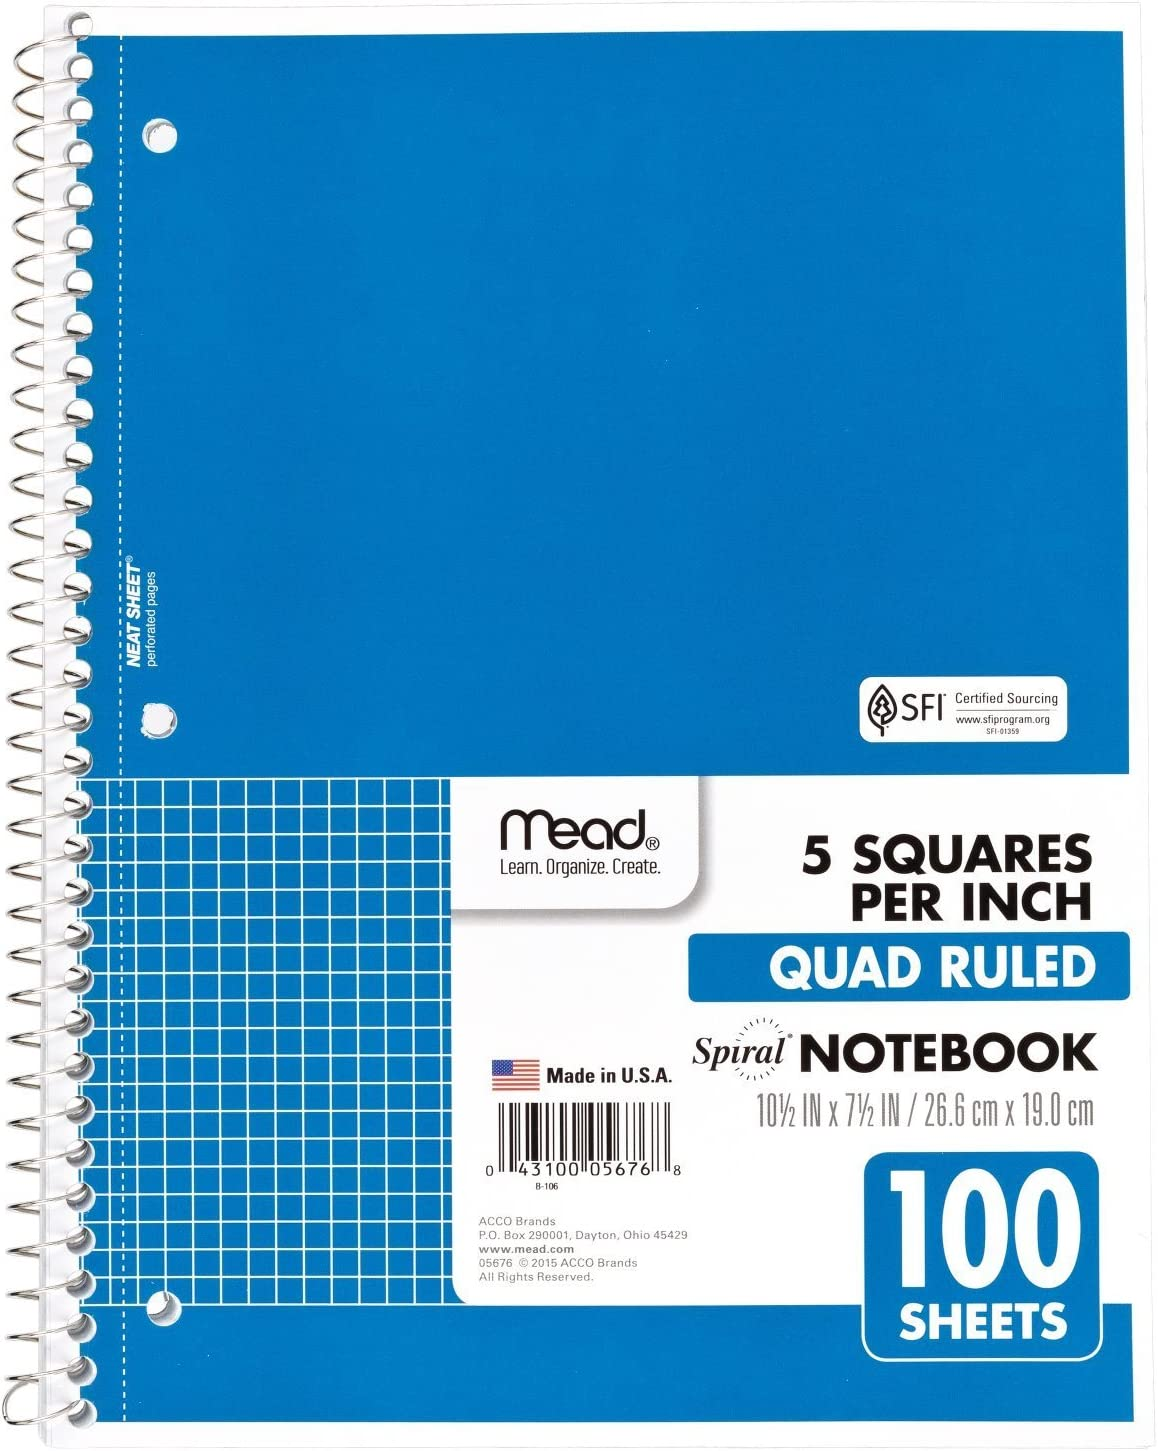 """Mead Spiral Notebook, 1 Subject, Quad Ruled, 100 Sheets, Grid Notebook with Engineering Graph Paper, Home Office & Home School Supplies for College Students & K-12, 10-1/2"""" x 8"""", Blue (05676AY7)"""